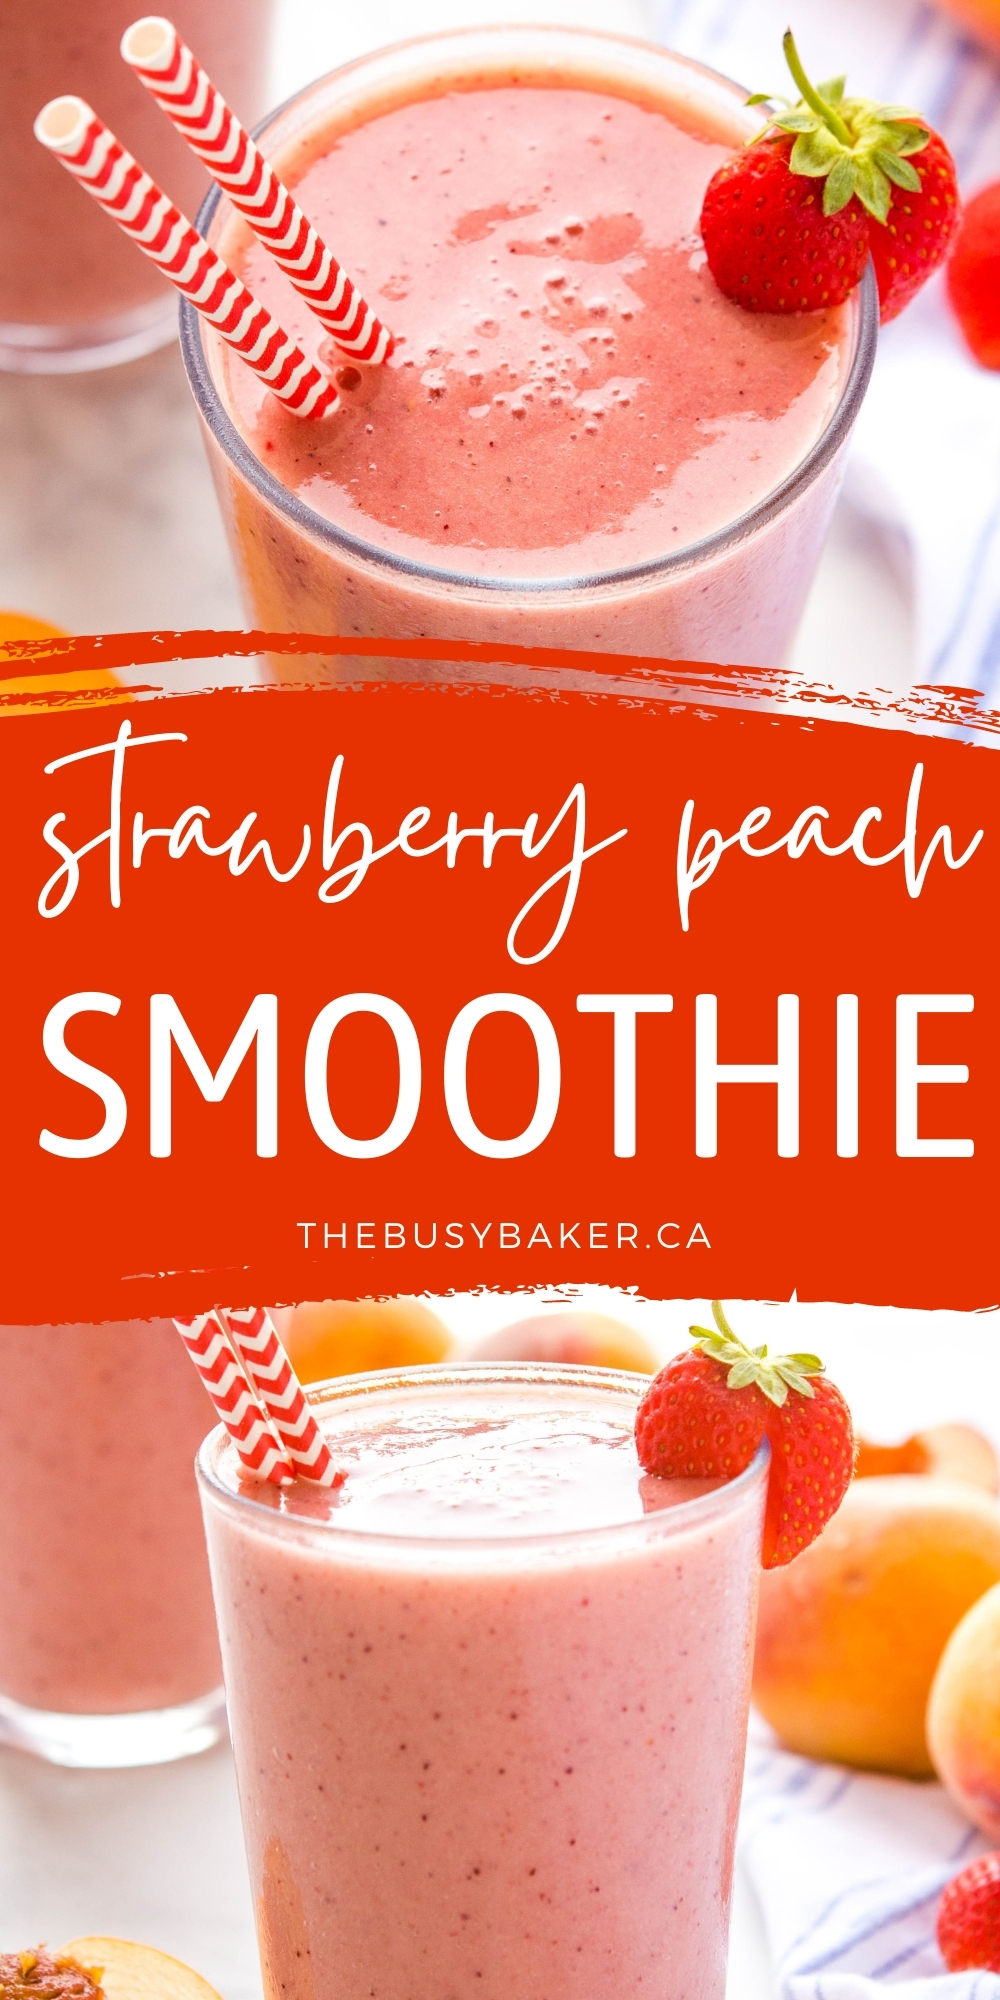 This Strawberry Peach Smoothie is is creamy and delicious, packed with peaches, strawberries, and bananas - nutritious, dairy-free, and easy to make for the best breakfast or snack!Recipe from thebusybaker.ca! #smoothie #breakfast #healthy #nutrition #easytomake #snack #postworkout #fruit #strawberrypeachsmoothie via @busybakerblog